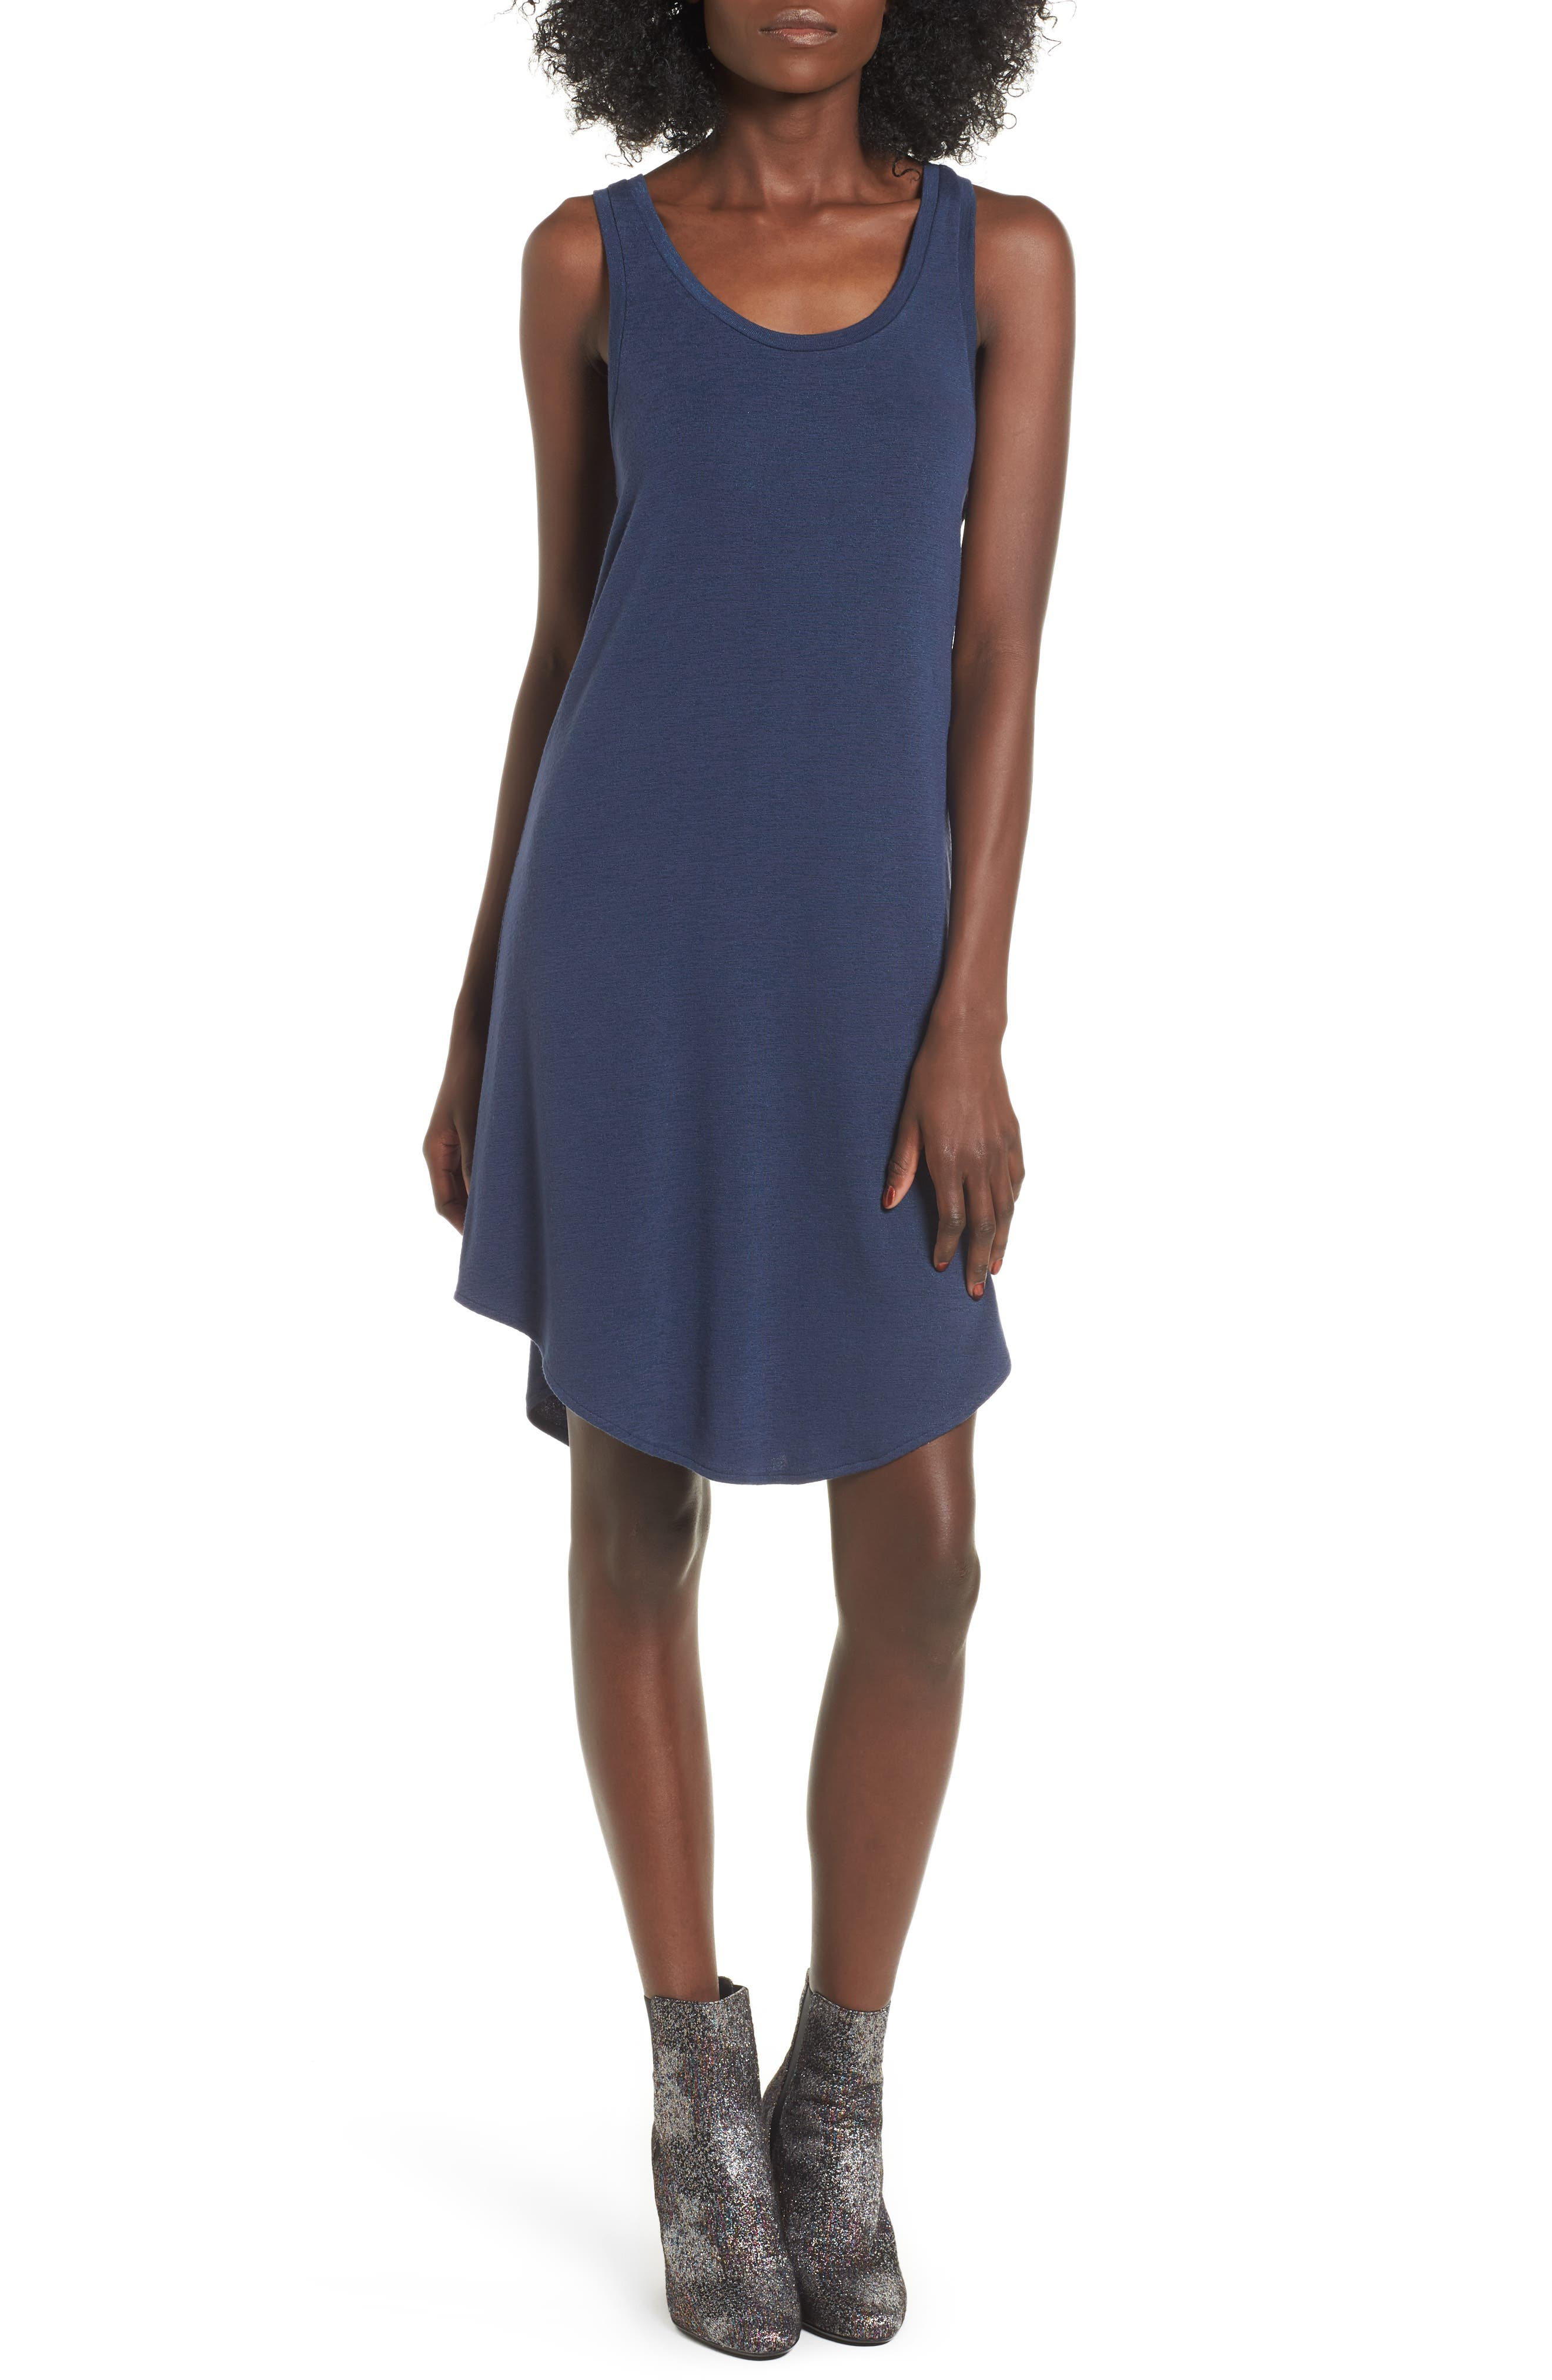 Dress for Women, Evening Cocktail Party On Sale, Blue, Cotton, 2017, 6 8 rag & bone JEAN